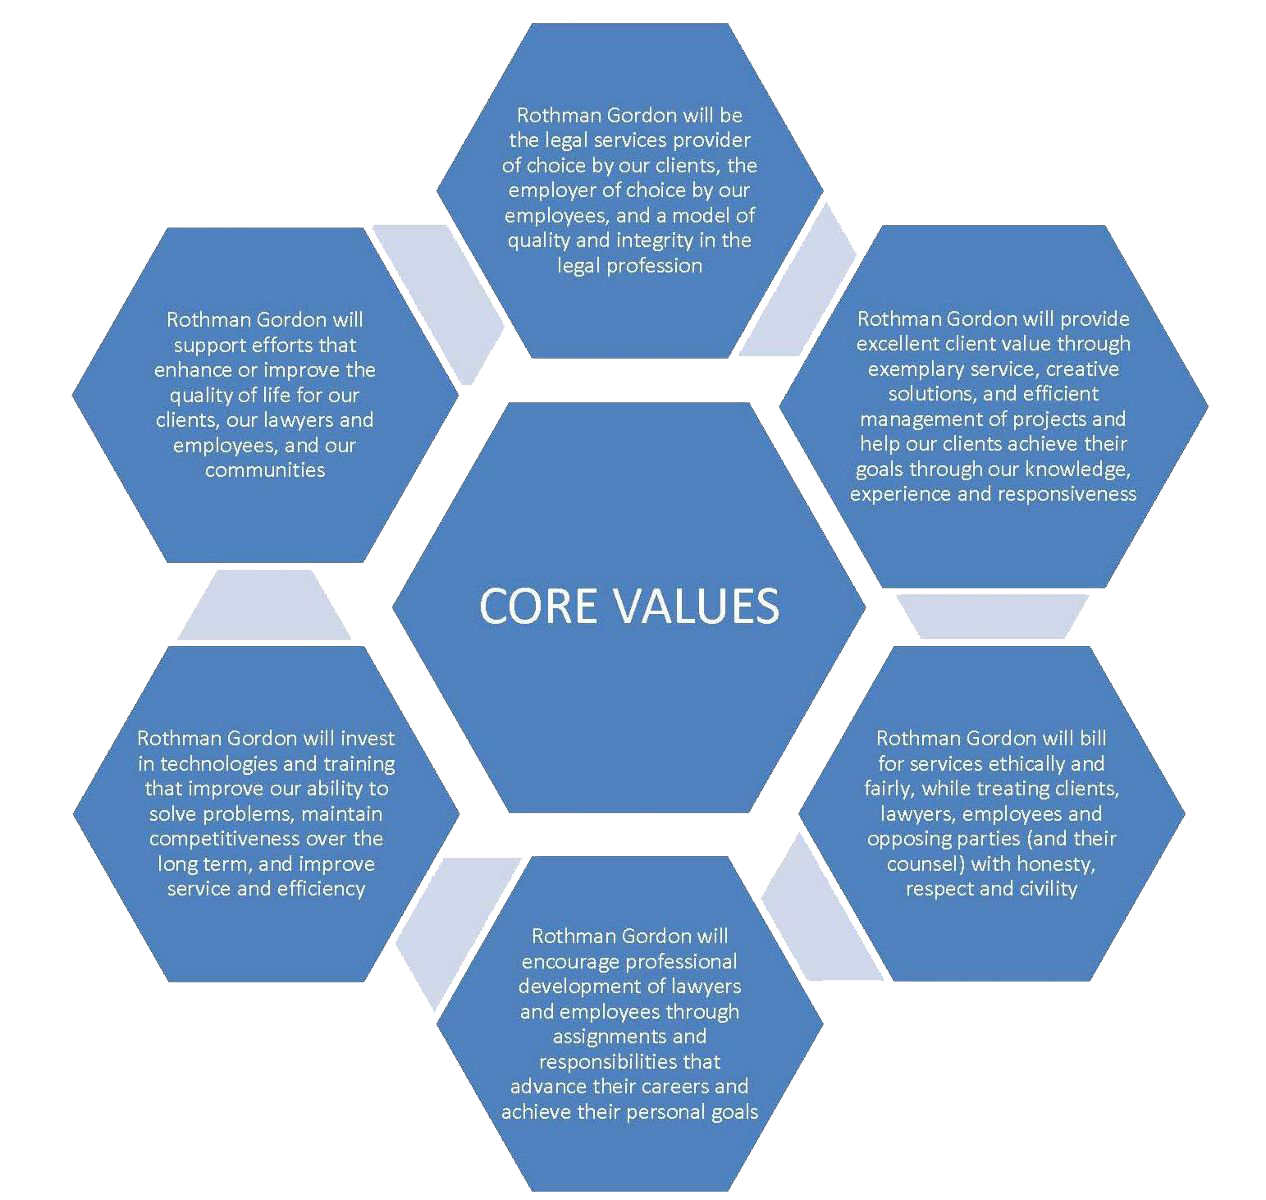 Six values that comprise Rothman Gordon's Core Value